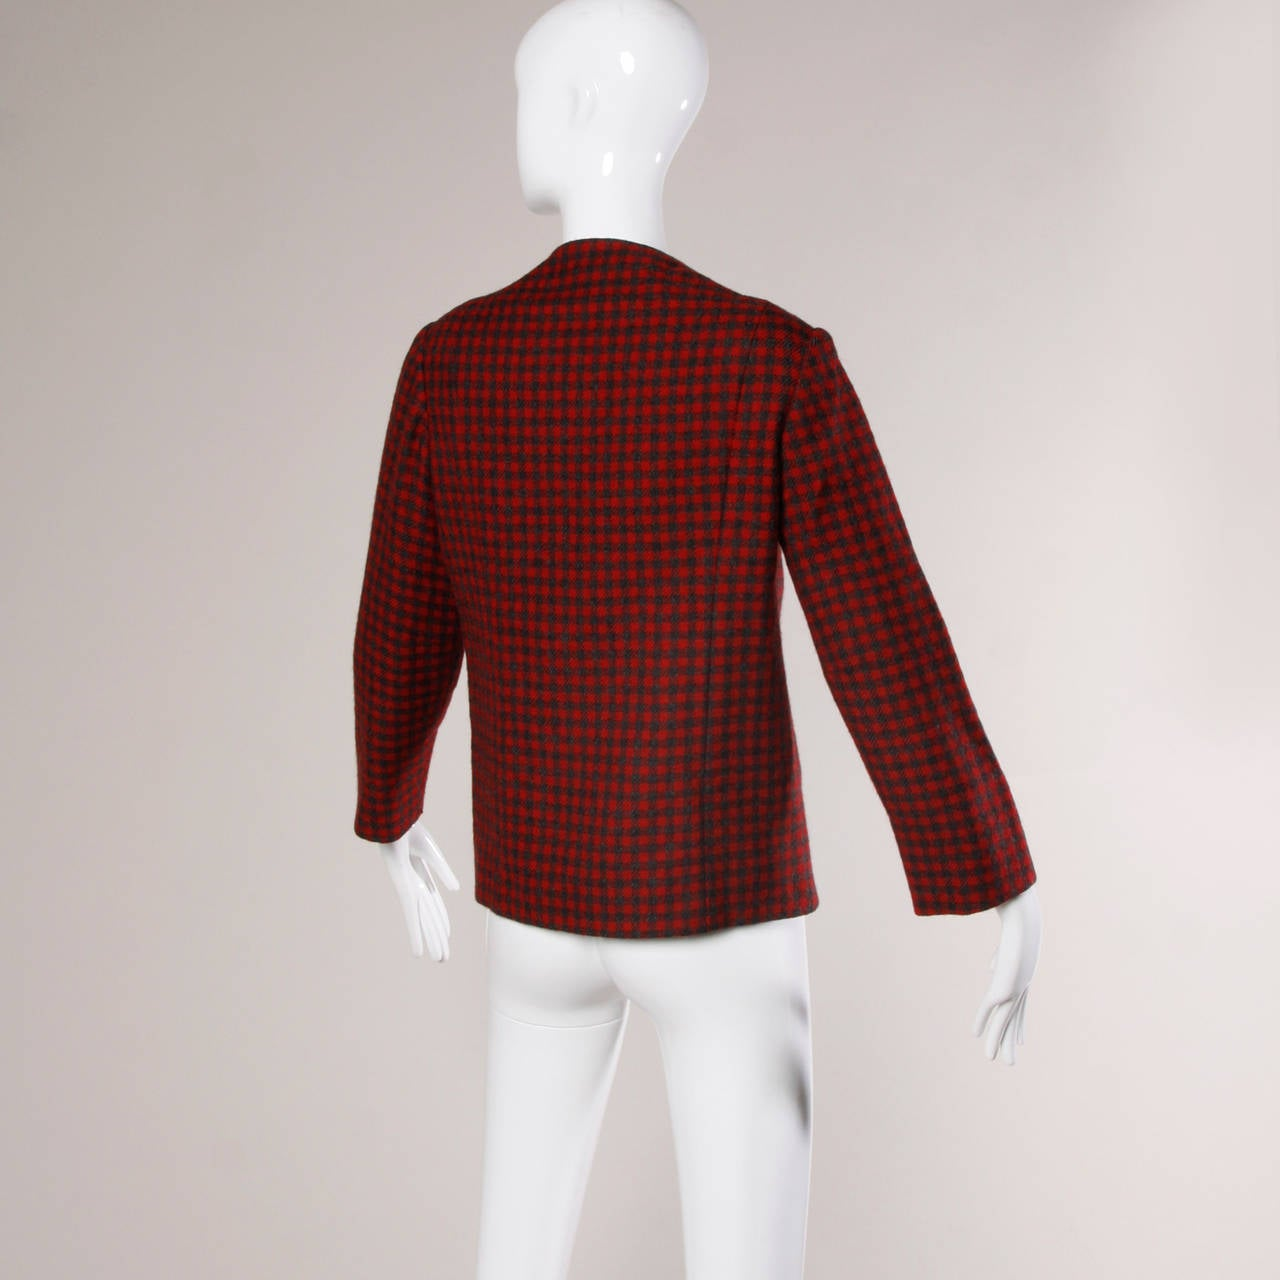 Vintage 1960's Pauline Trigere Houndstooth Jacket For Sale 1